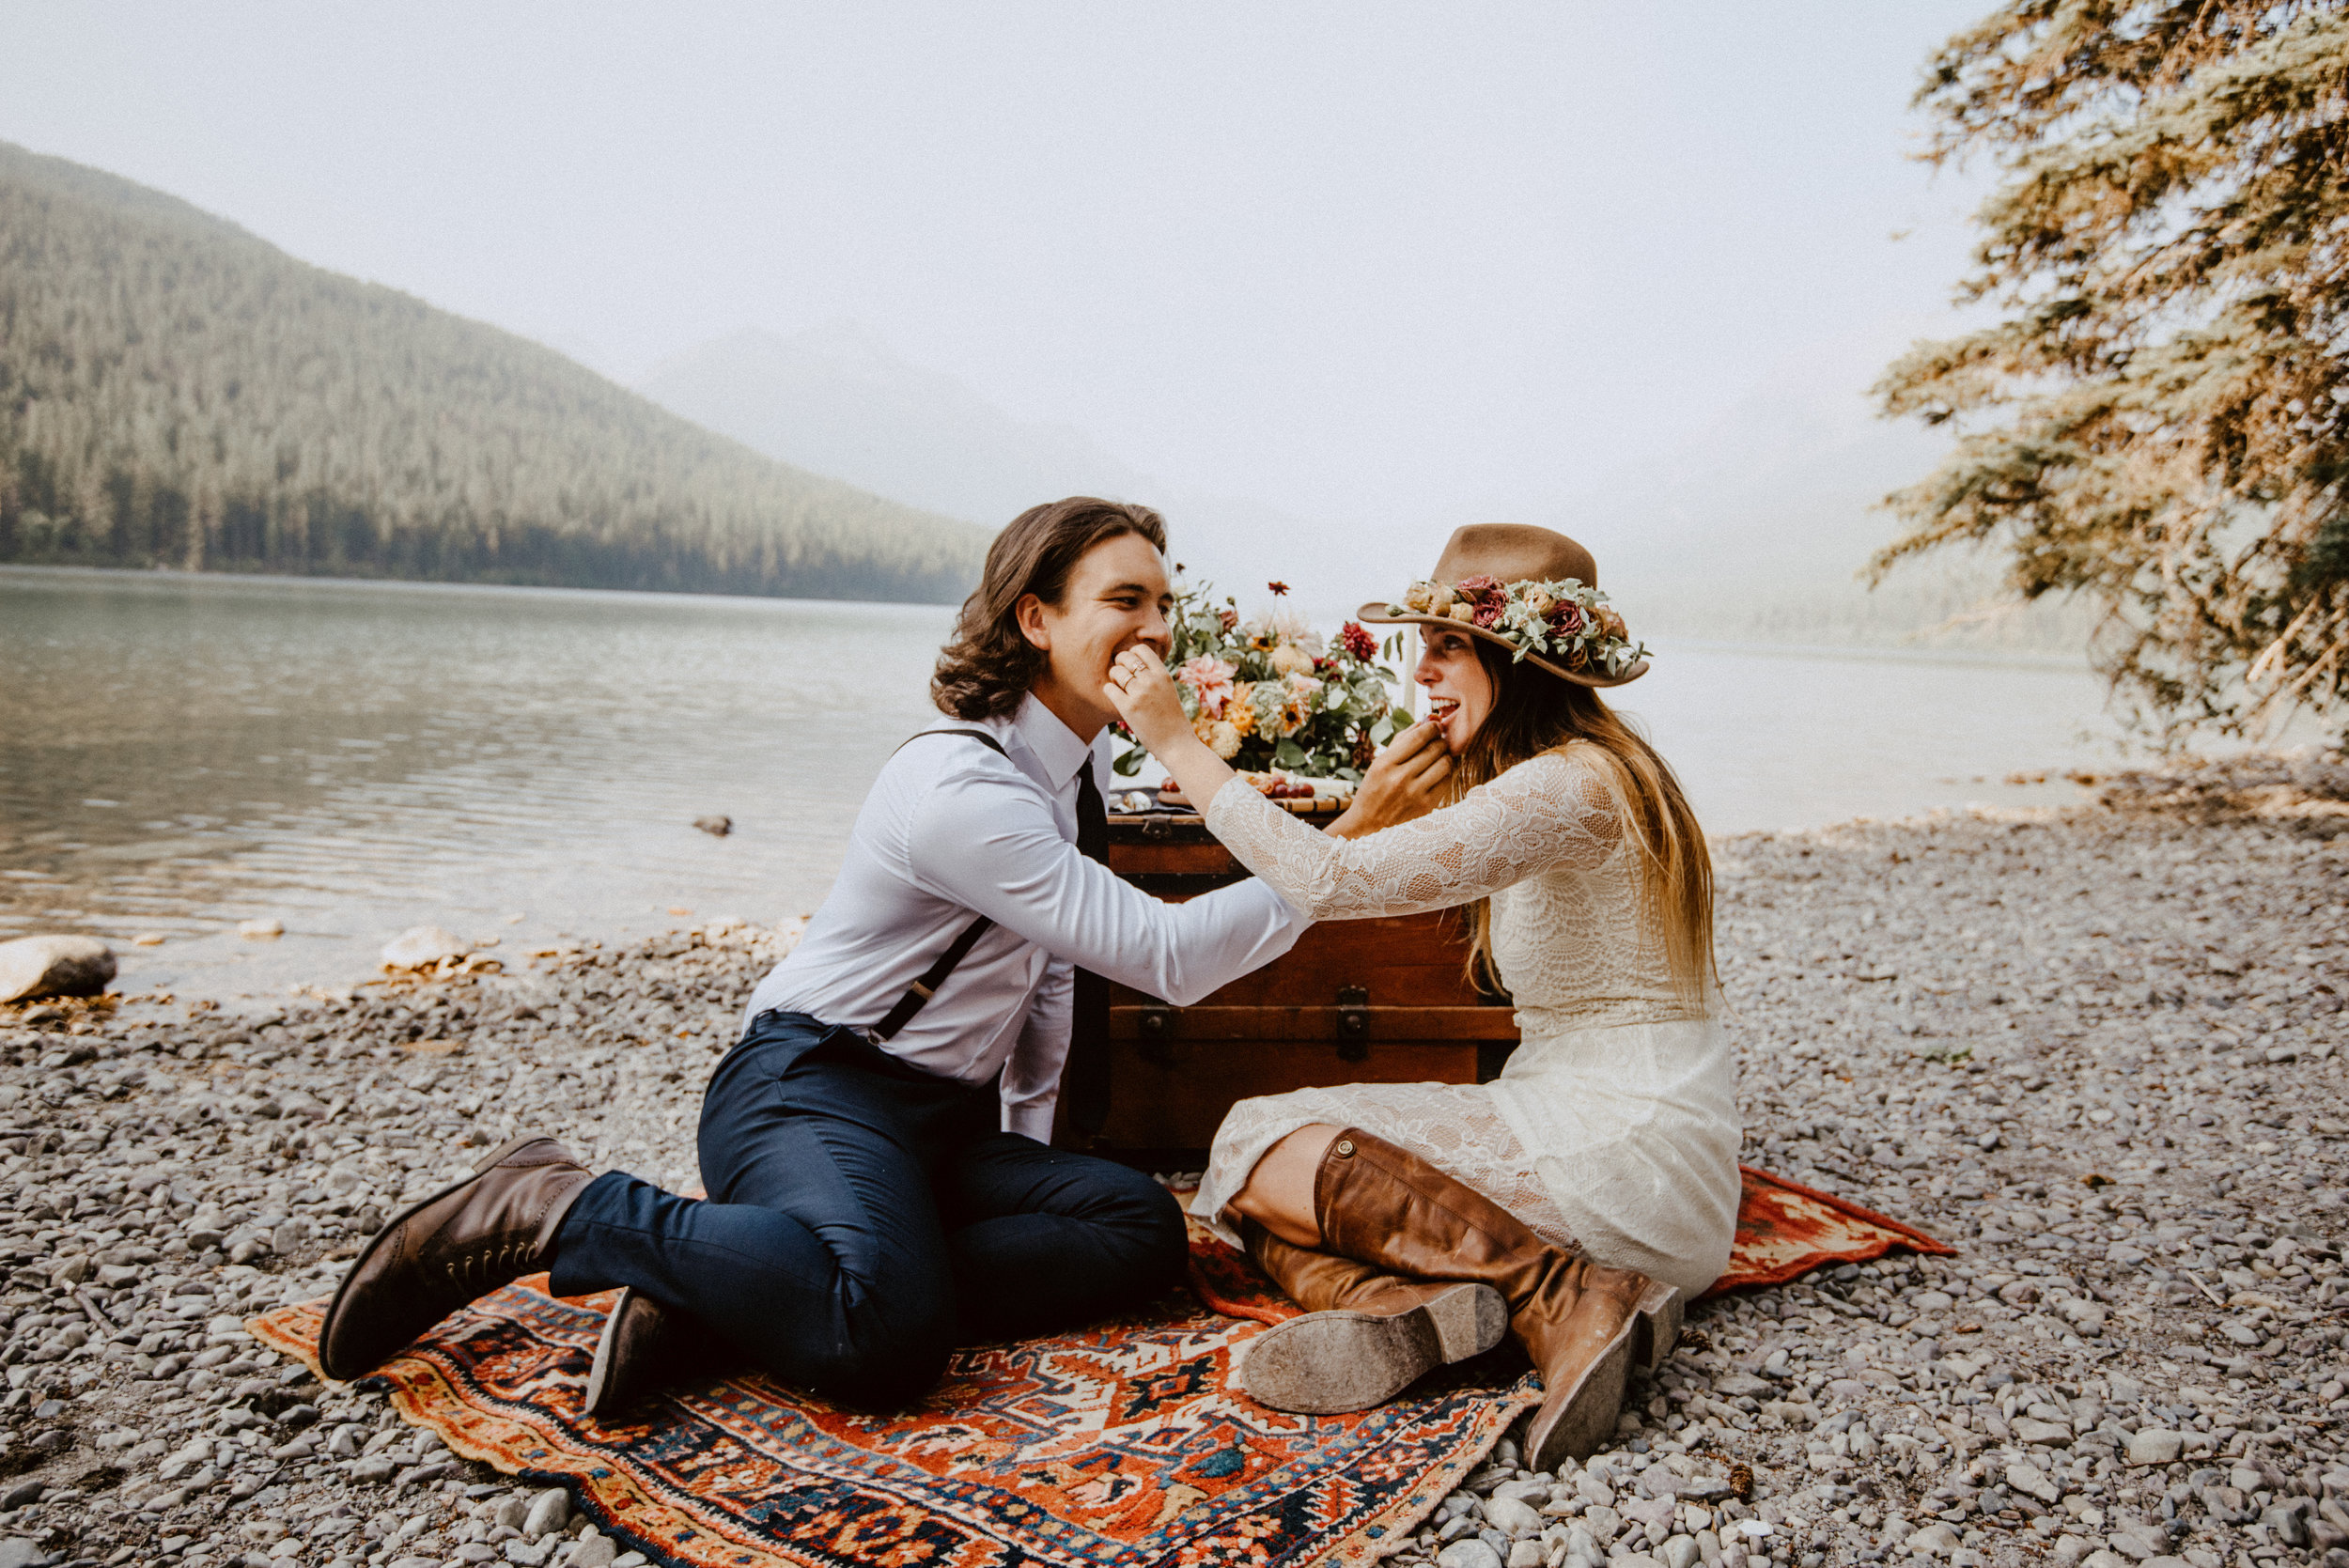 Outdoor elopement portrait of engaged couple sitting on renewable and sustainable bohemian carpet while feeding each other at Glacier National Park MT